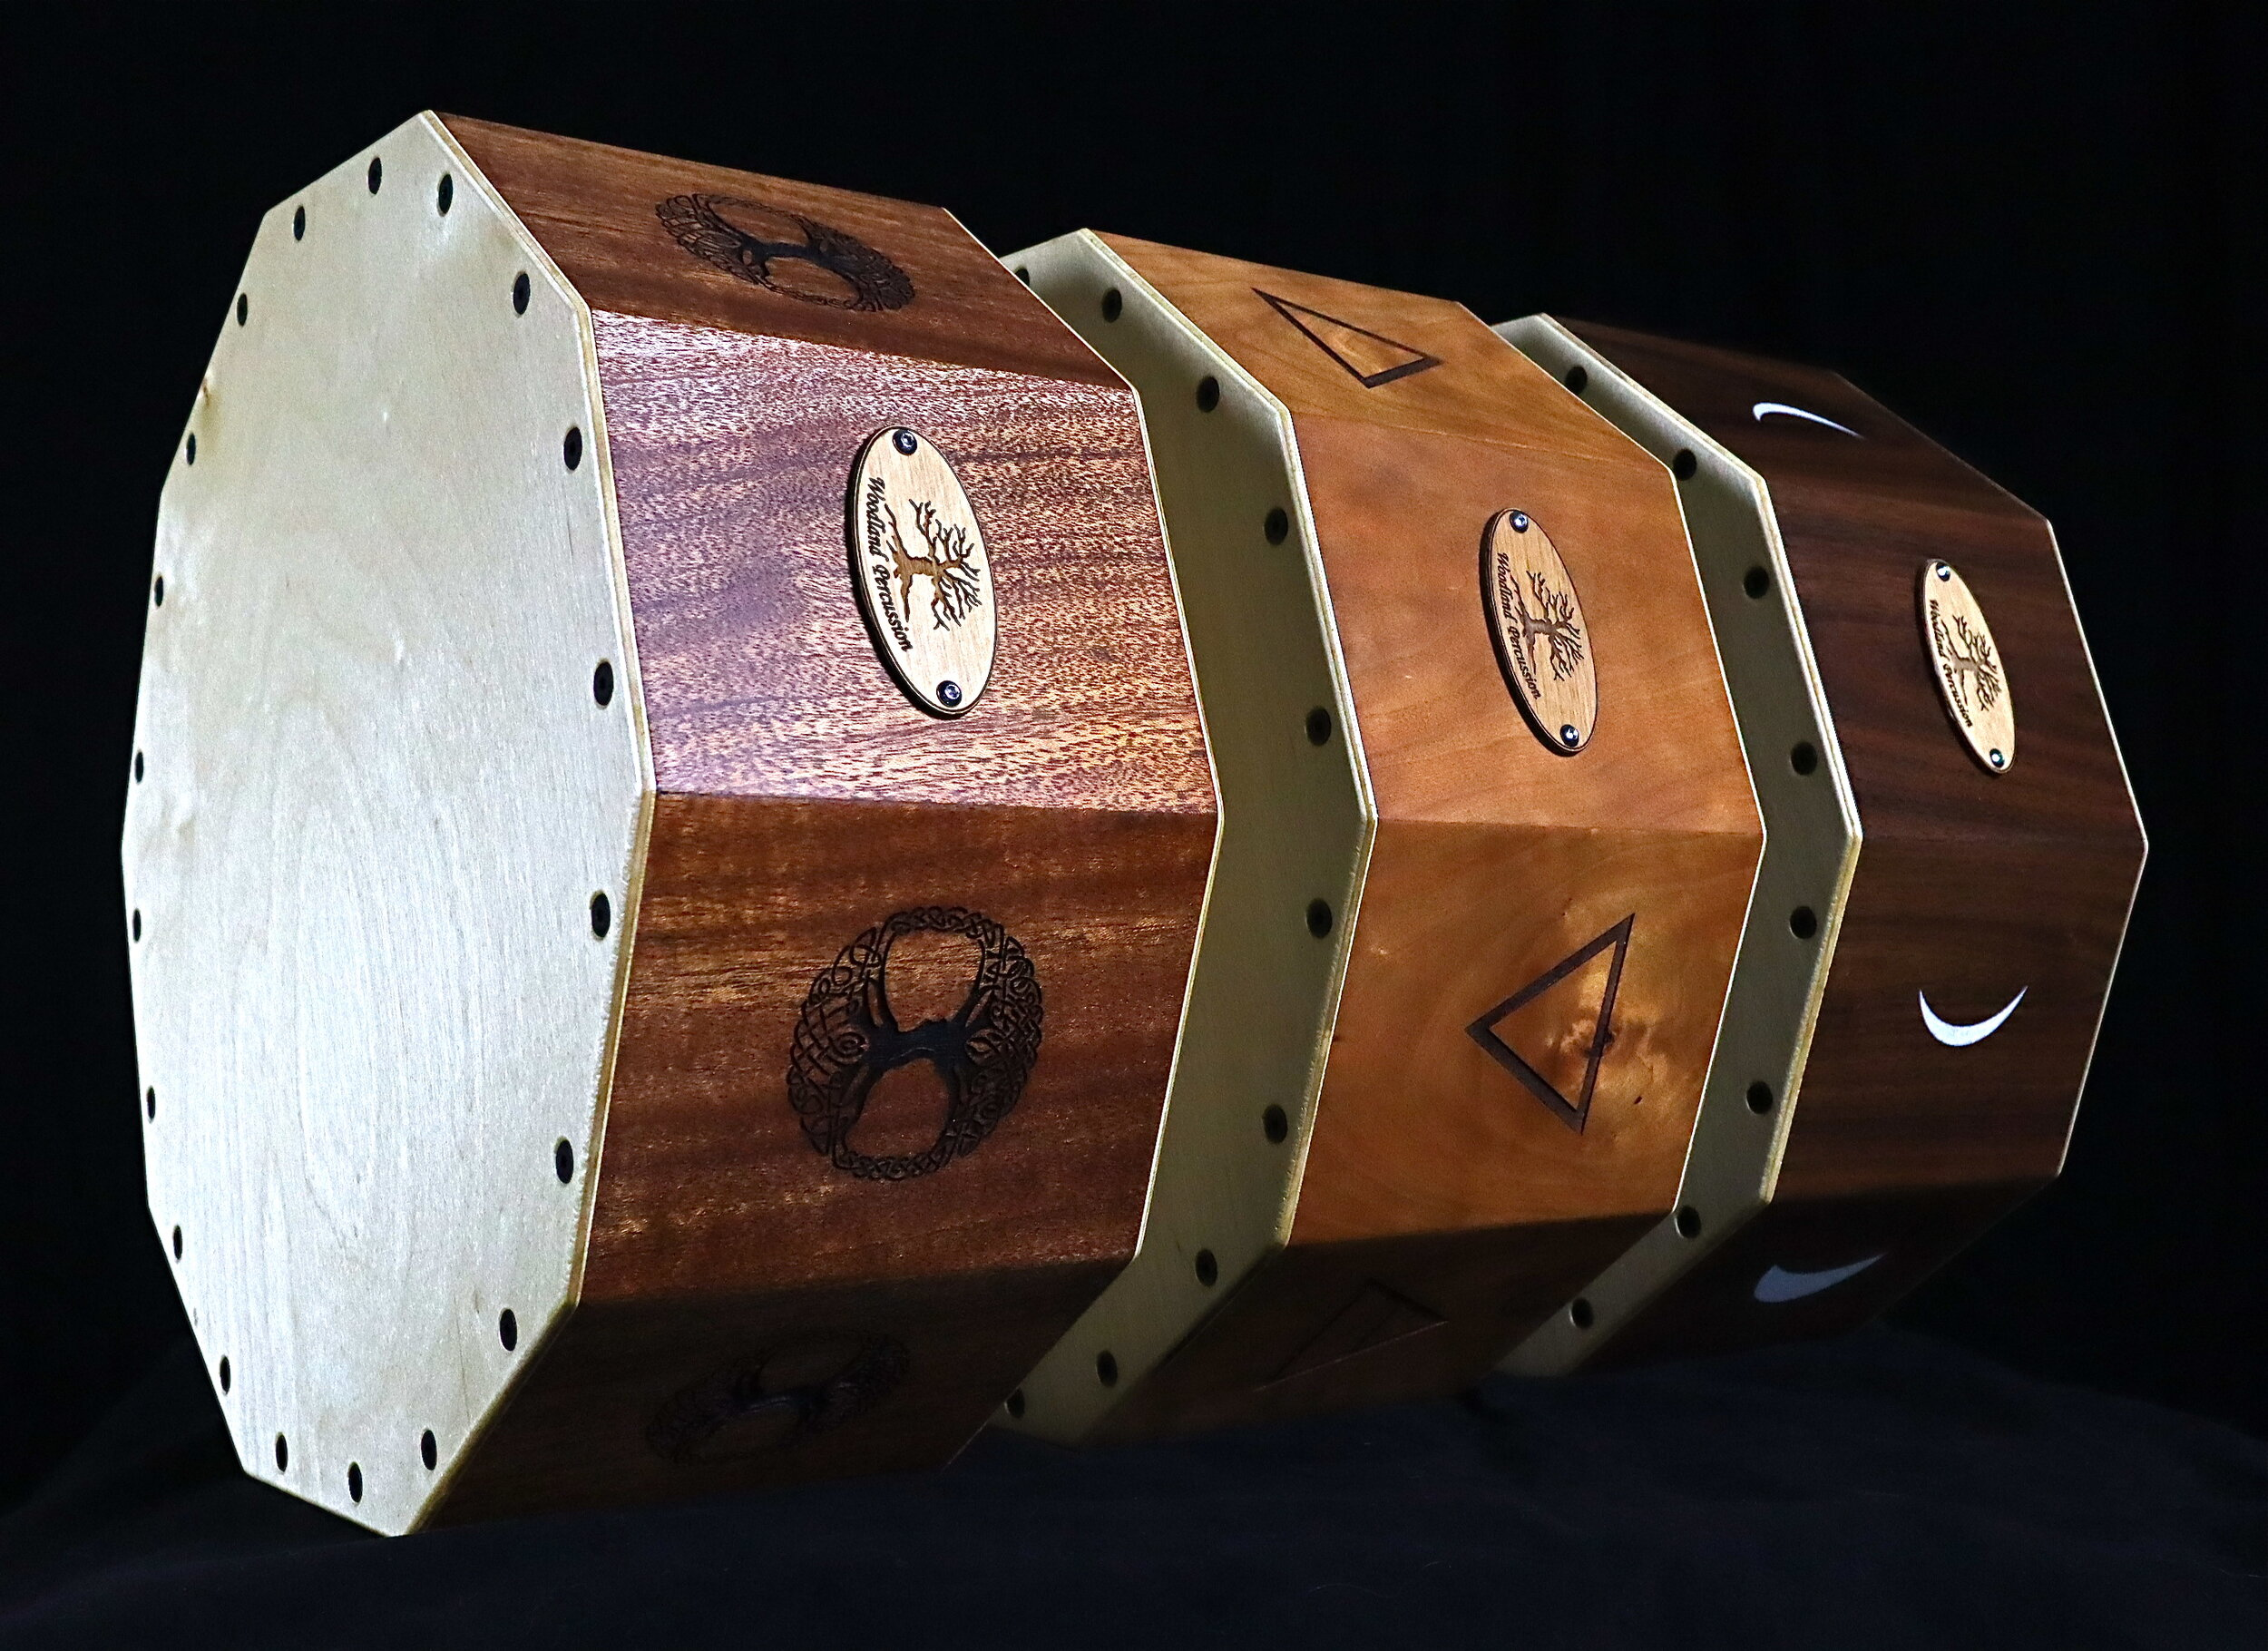 Woodland Percussion Deca Drums